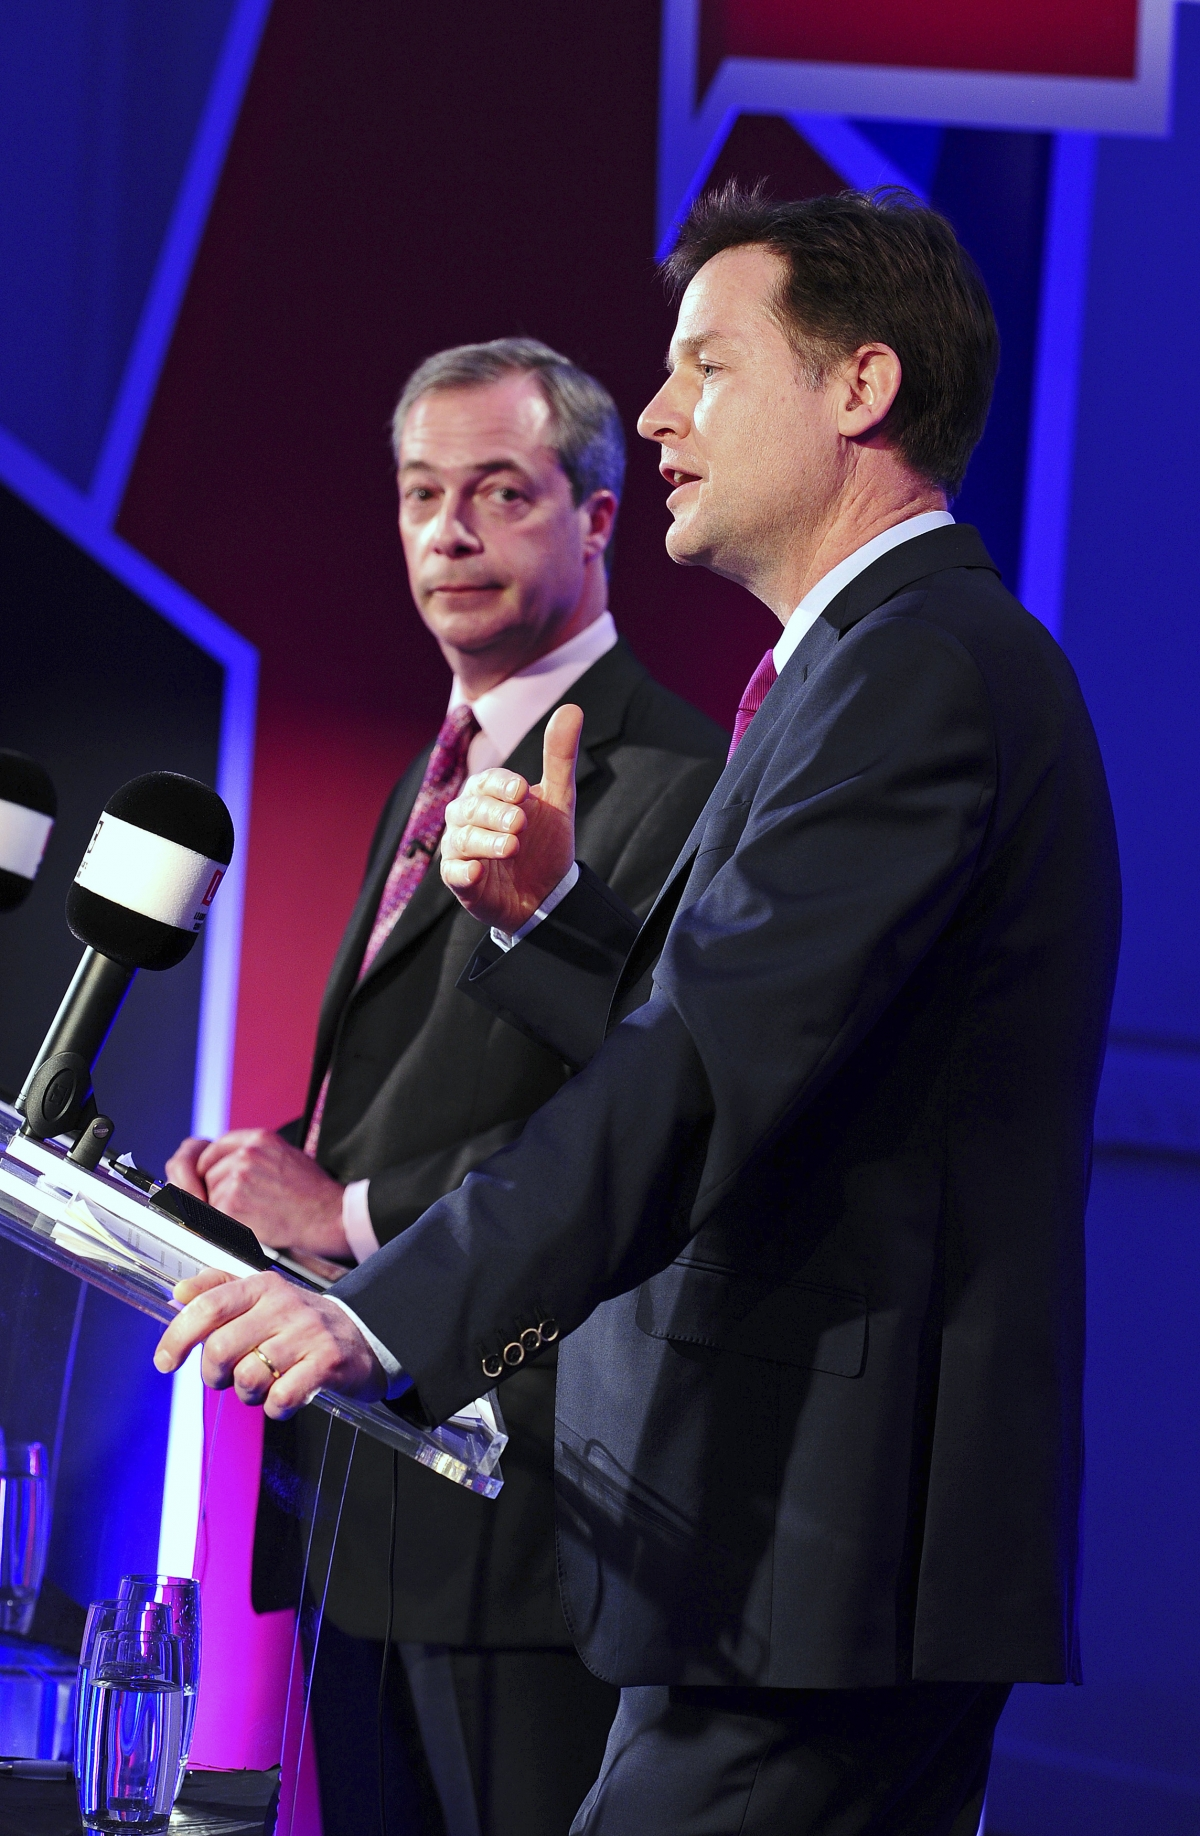 YouGov's snap poll delivered the debate to Farage by 68% to Clegg's 27%